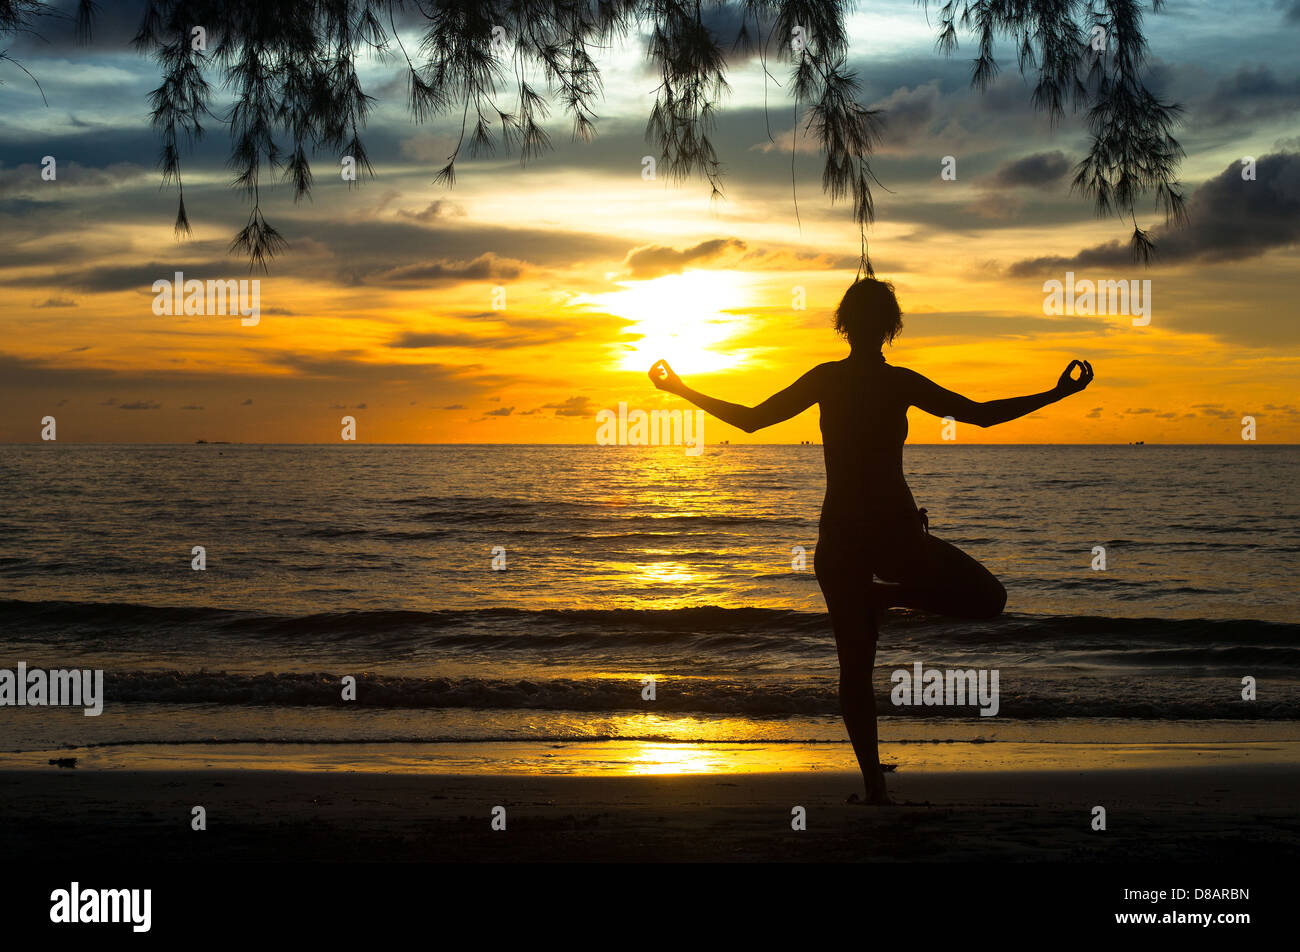 Woman practicing yoga on the beach during sunset. - Stock Image